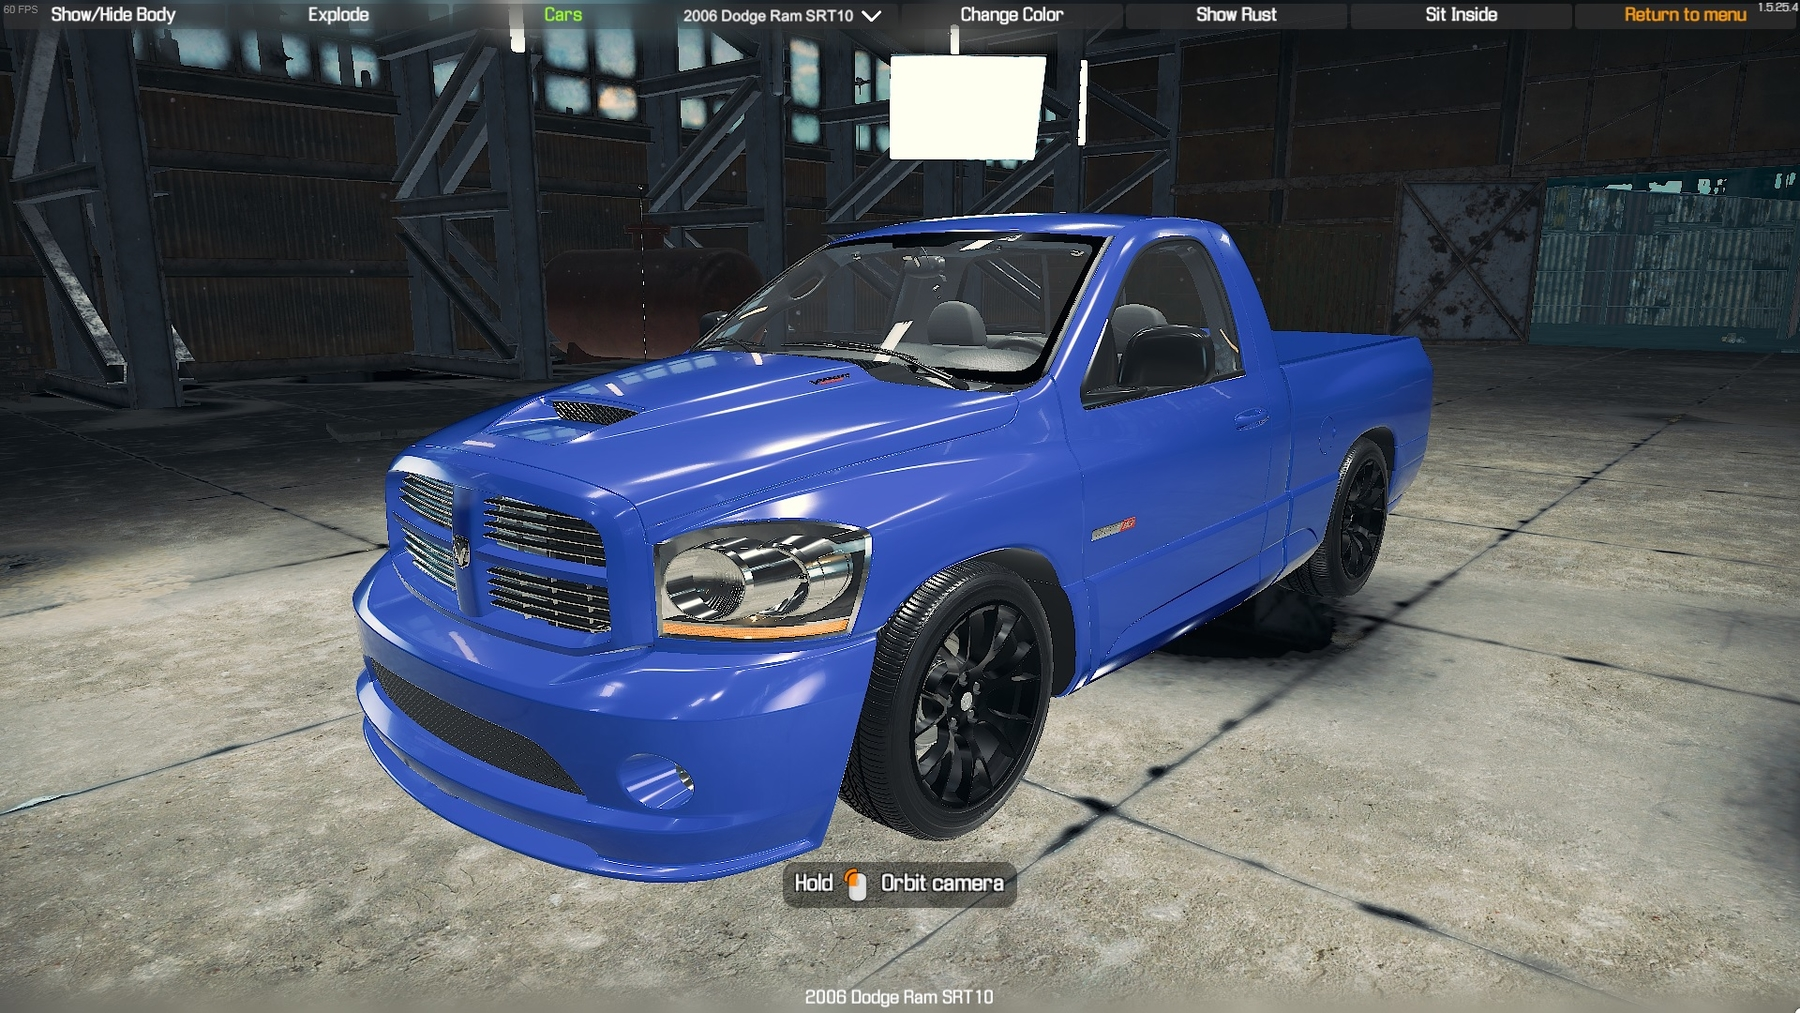 Dodge Ram Truck Games >> 2006 Dodge Ram SRT10 - CMS 2018 Cars - Car Mechanic ...